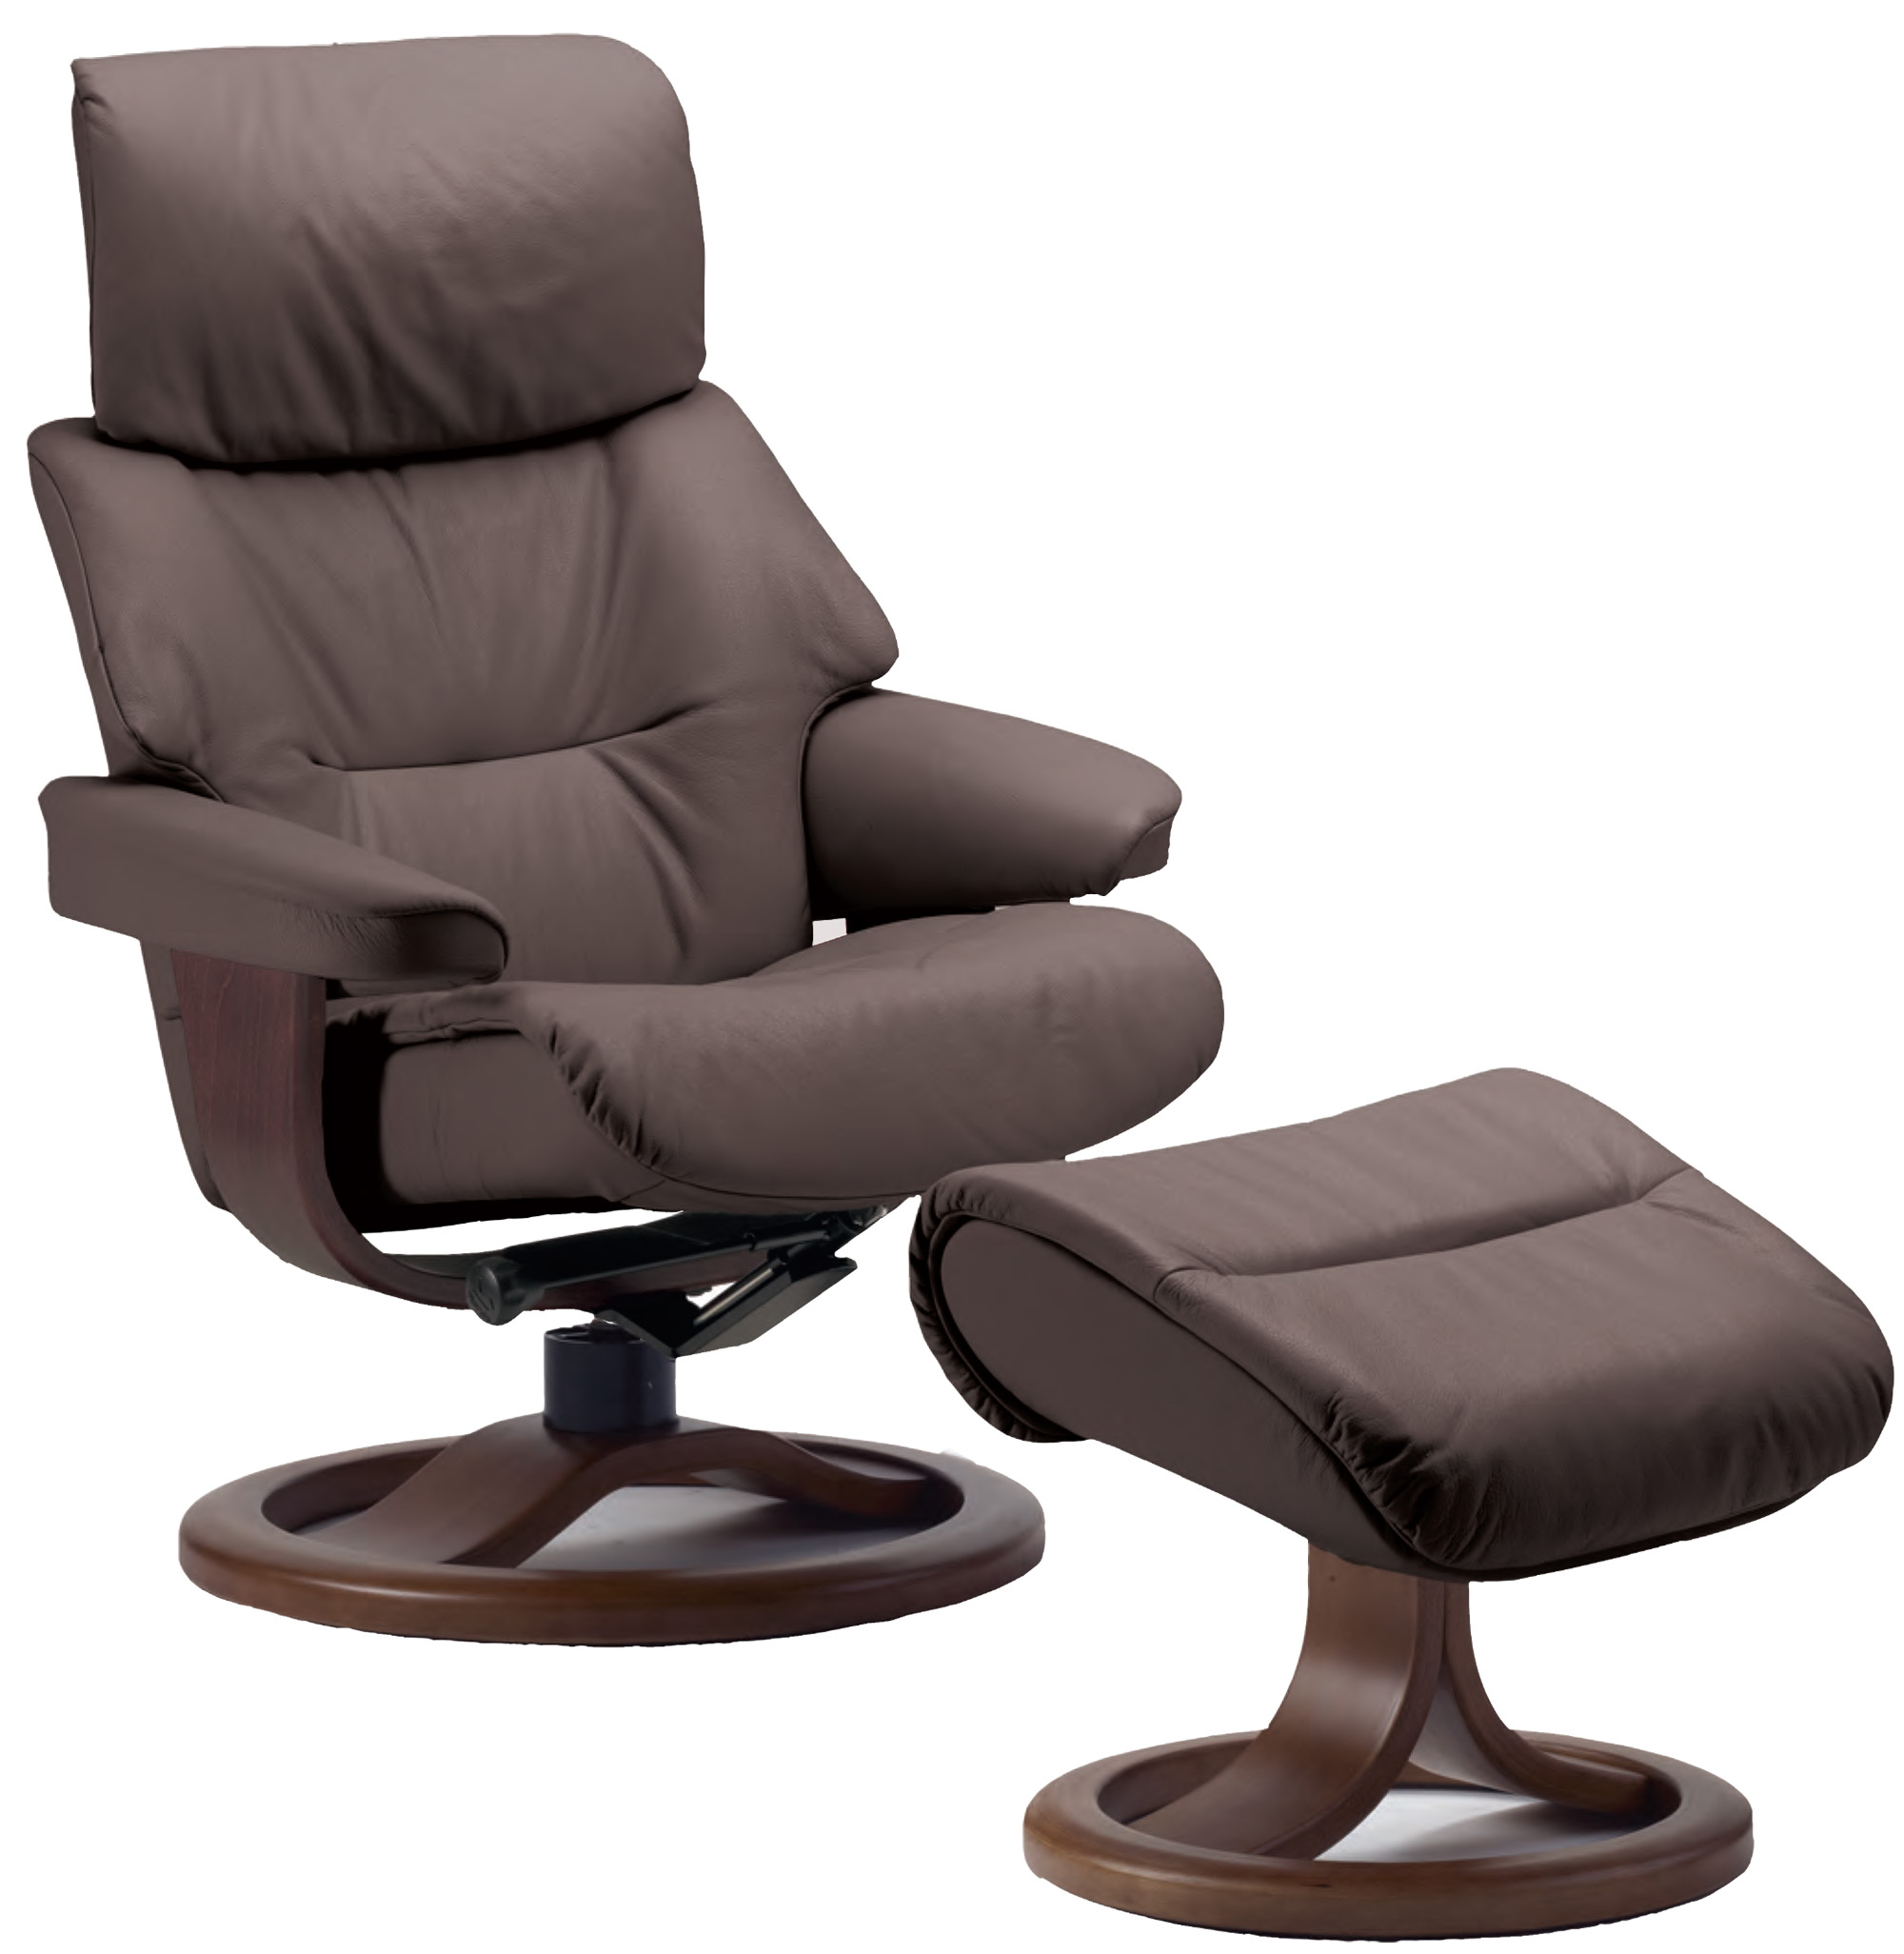 recliner crosby leather chair black brown rocker gallery